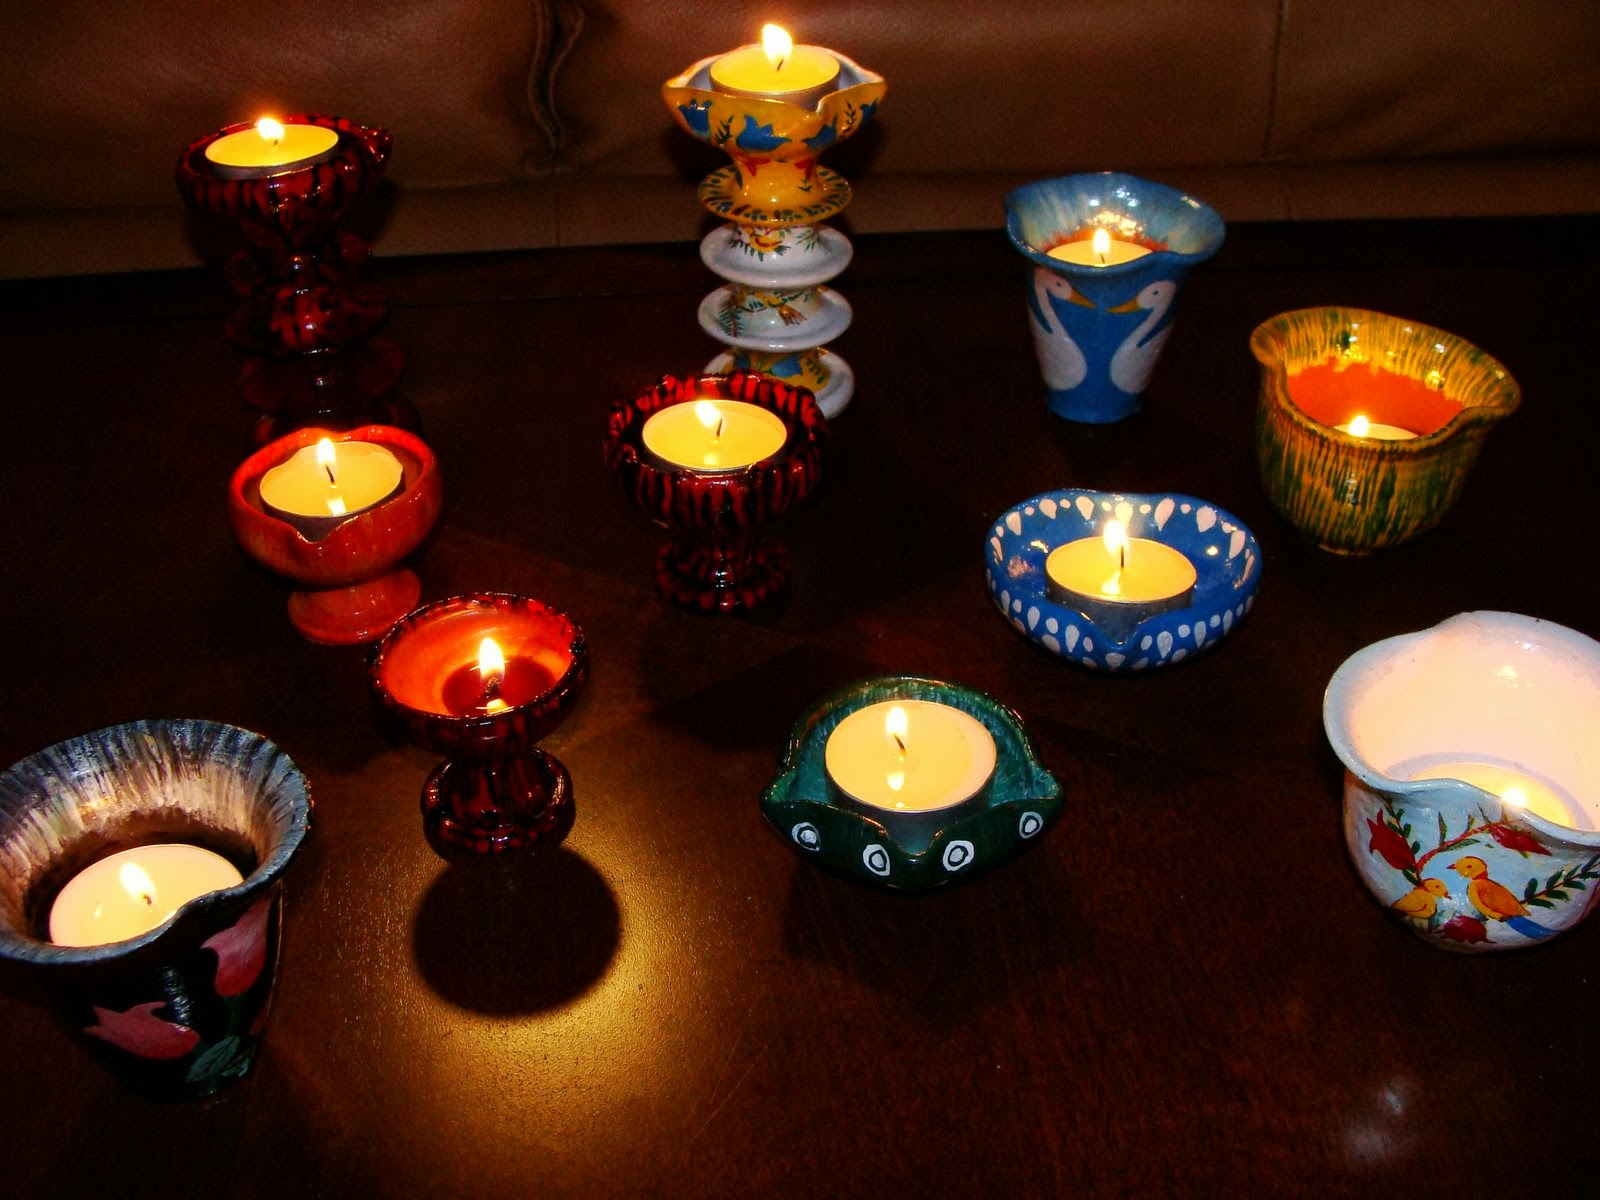 Diwali Gifts for Family: What Are the Best Diwali Ideas ...